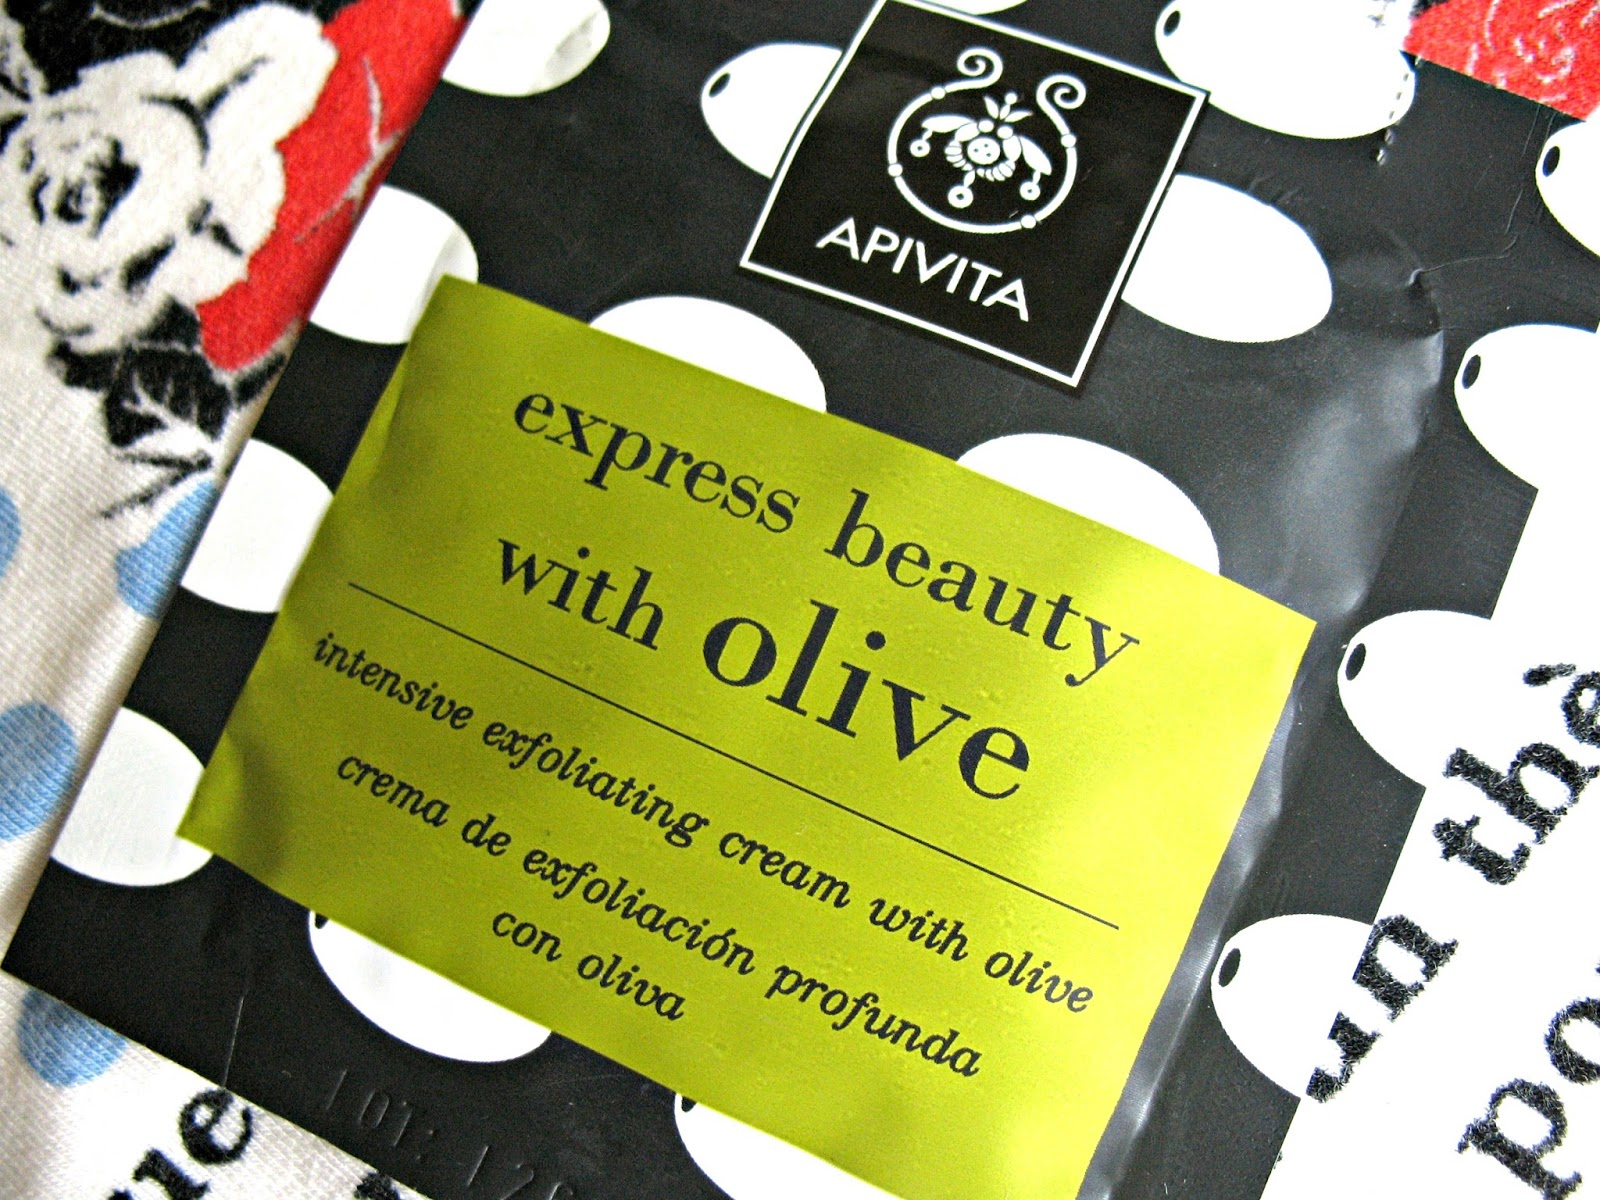 Apivita_Express_Beauty_with_Olive_review_01